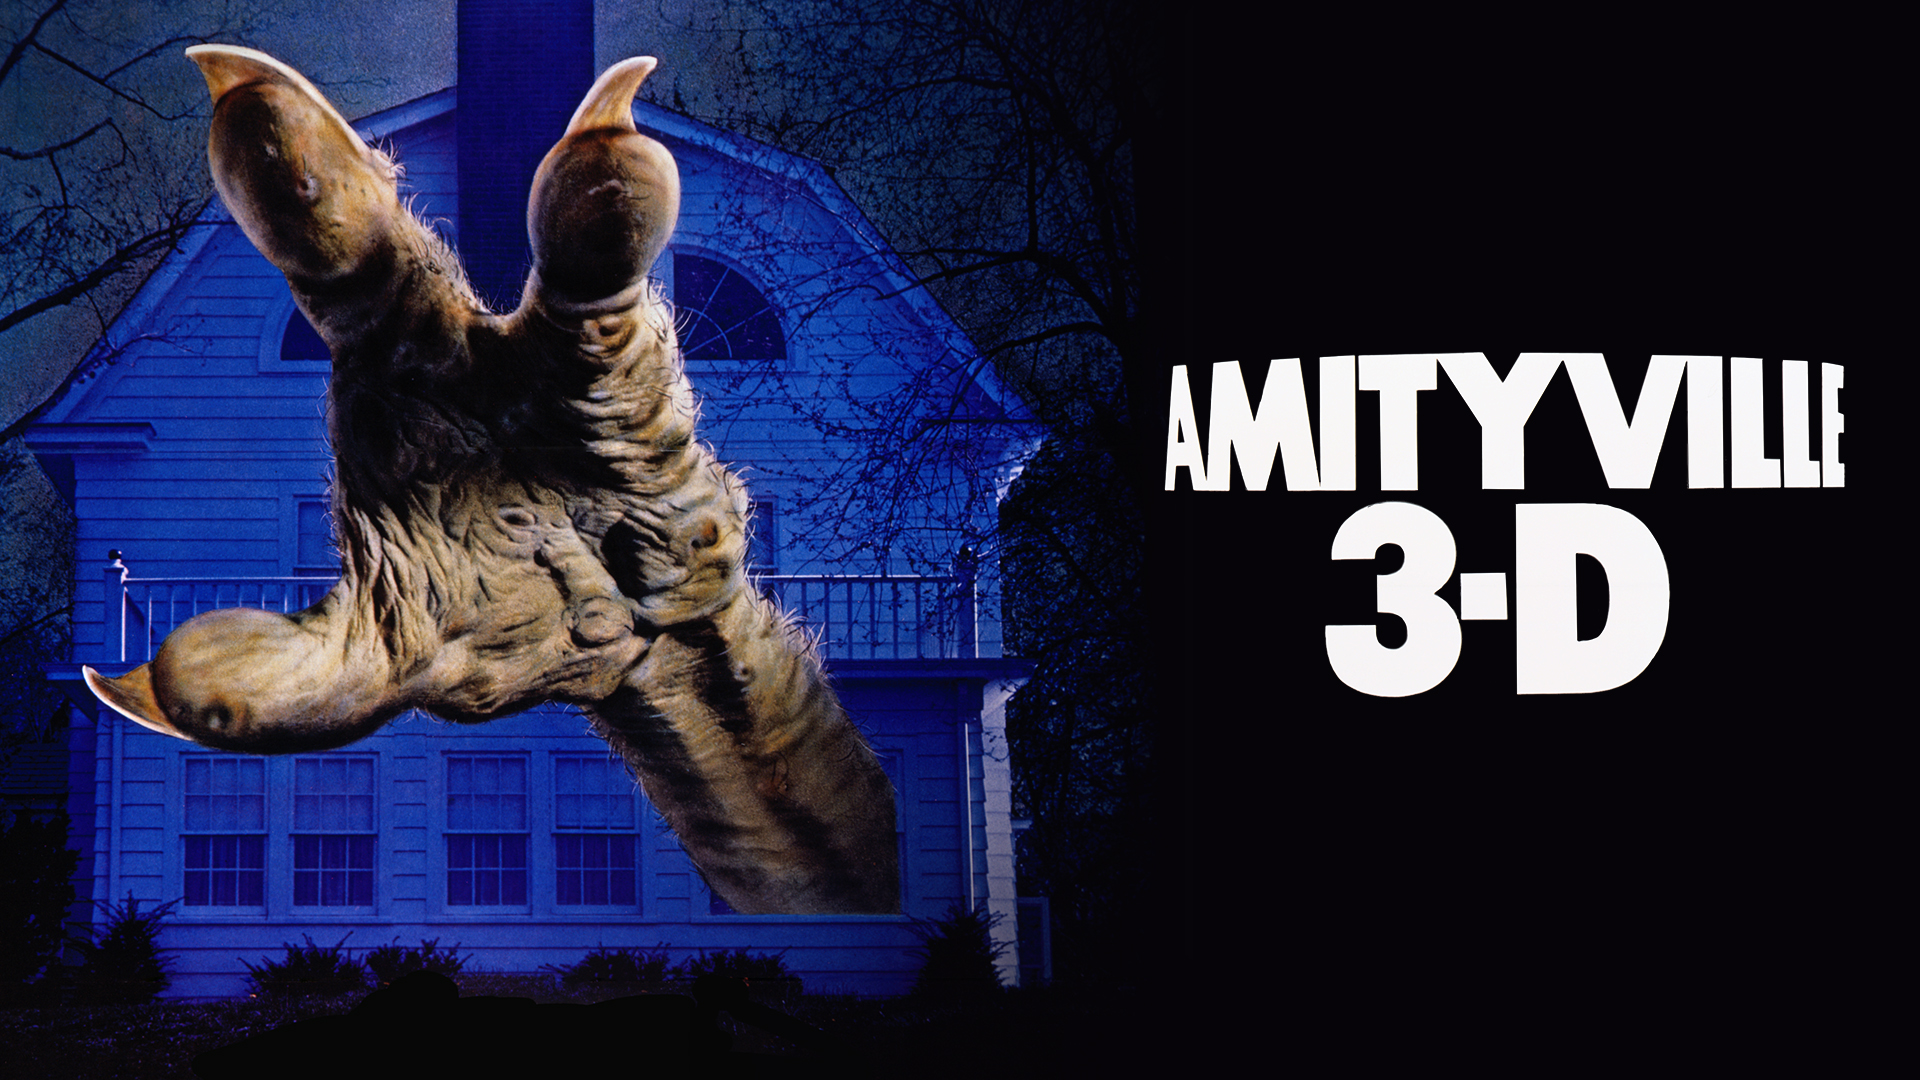 Watch Amityville 3 D Prime Video